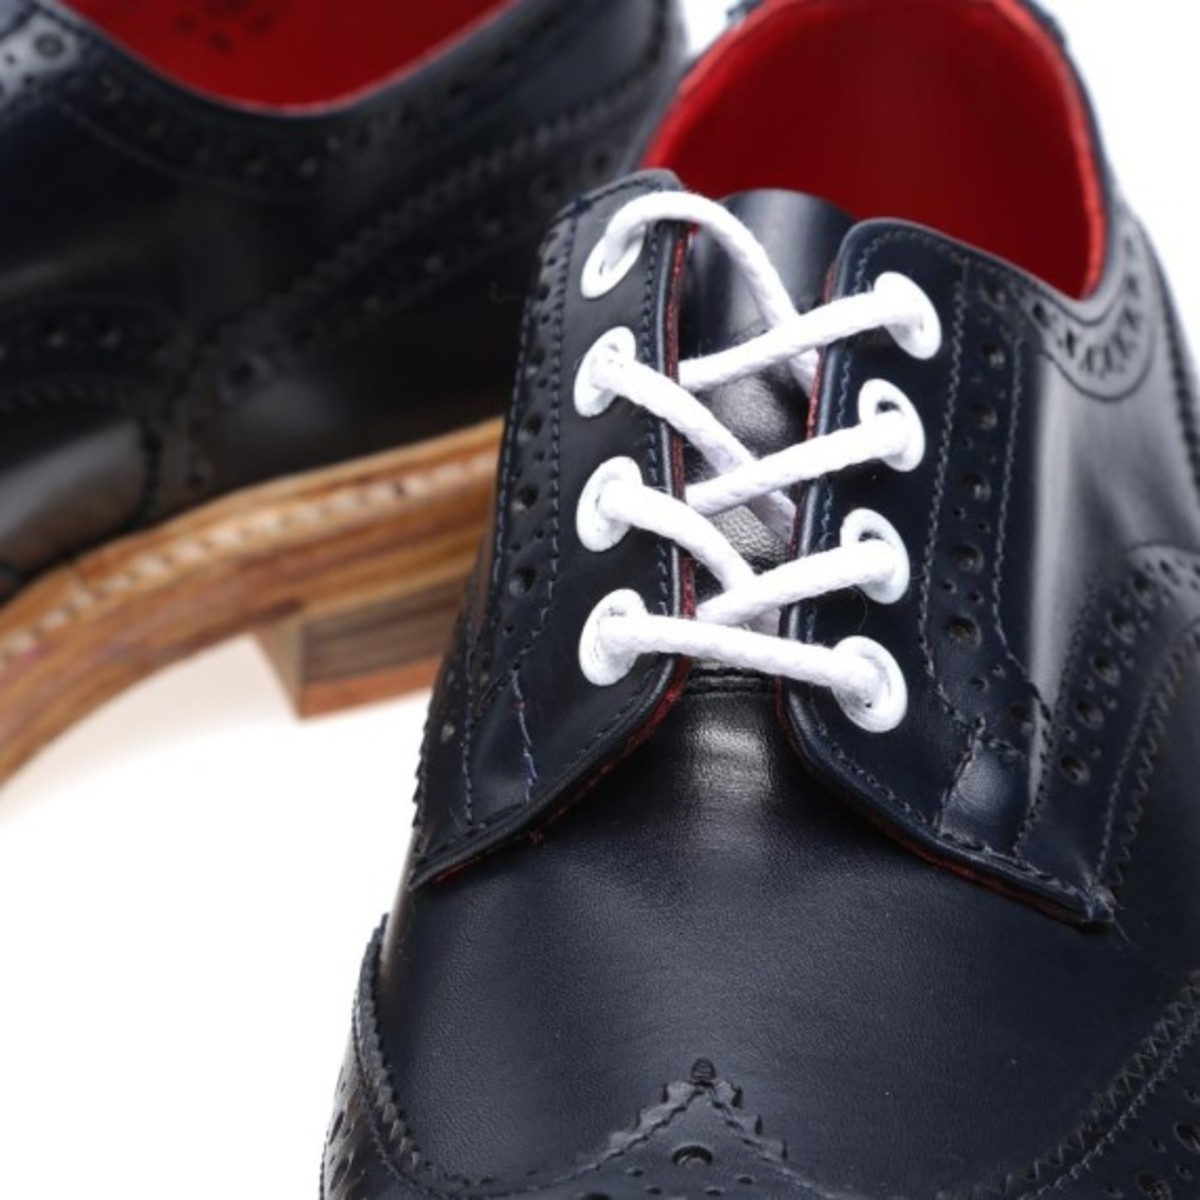 end-x-trickers-bourton-derby-brogue-autumnal-pack-Navy-Aniline-Leather-08